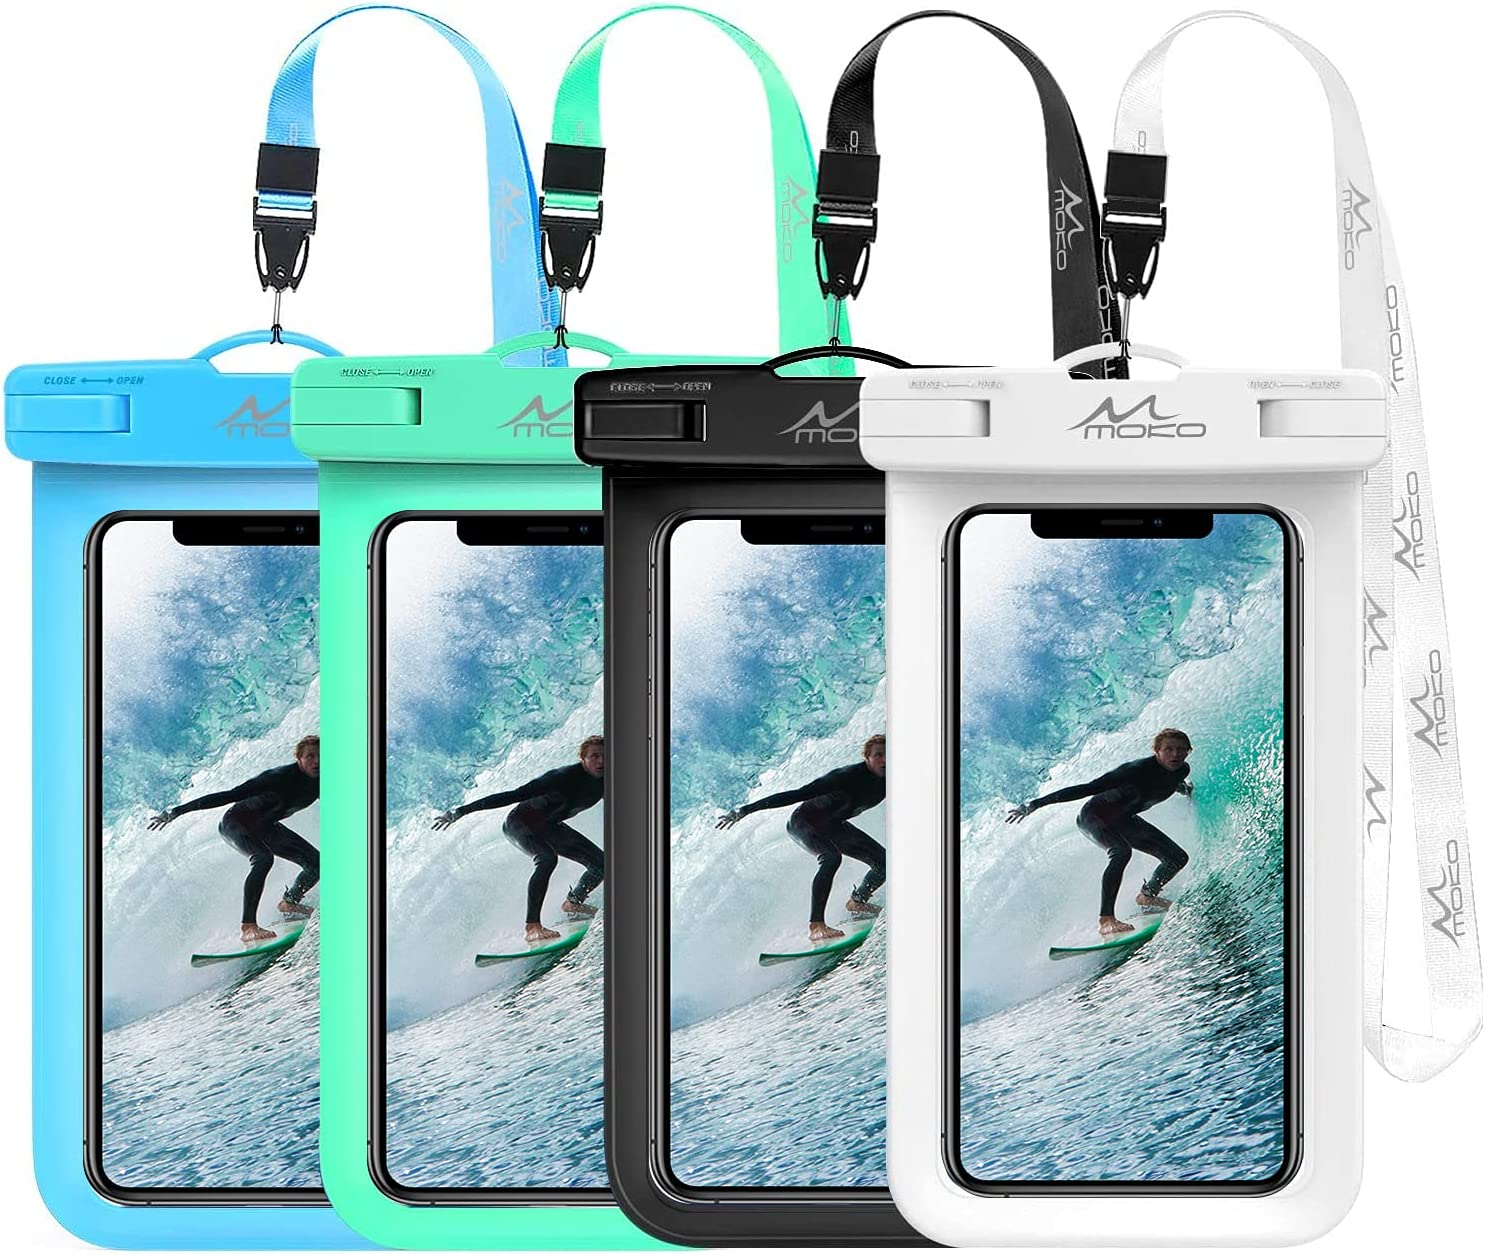 MoKo Waterproof Phone Pouch Holder [4 Pack], Underwater Phone Case Dry Bag with Lanyard Compatible with iPhone 13/13 Pro Max/iPhone 12/12 Pro Max/11 Pro Max, X/Xr/Xs Max, Samsung S21/S10/S9, Note 10